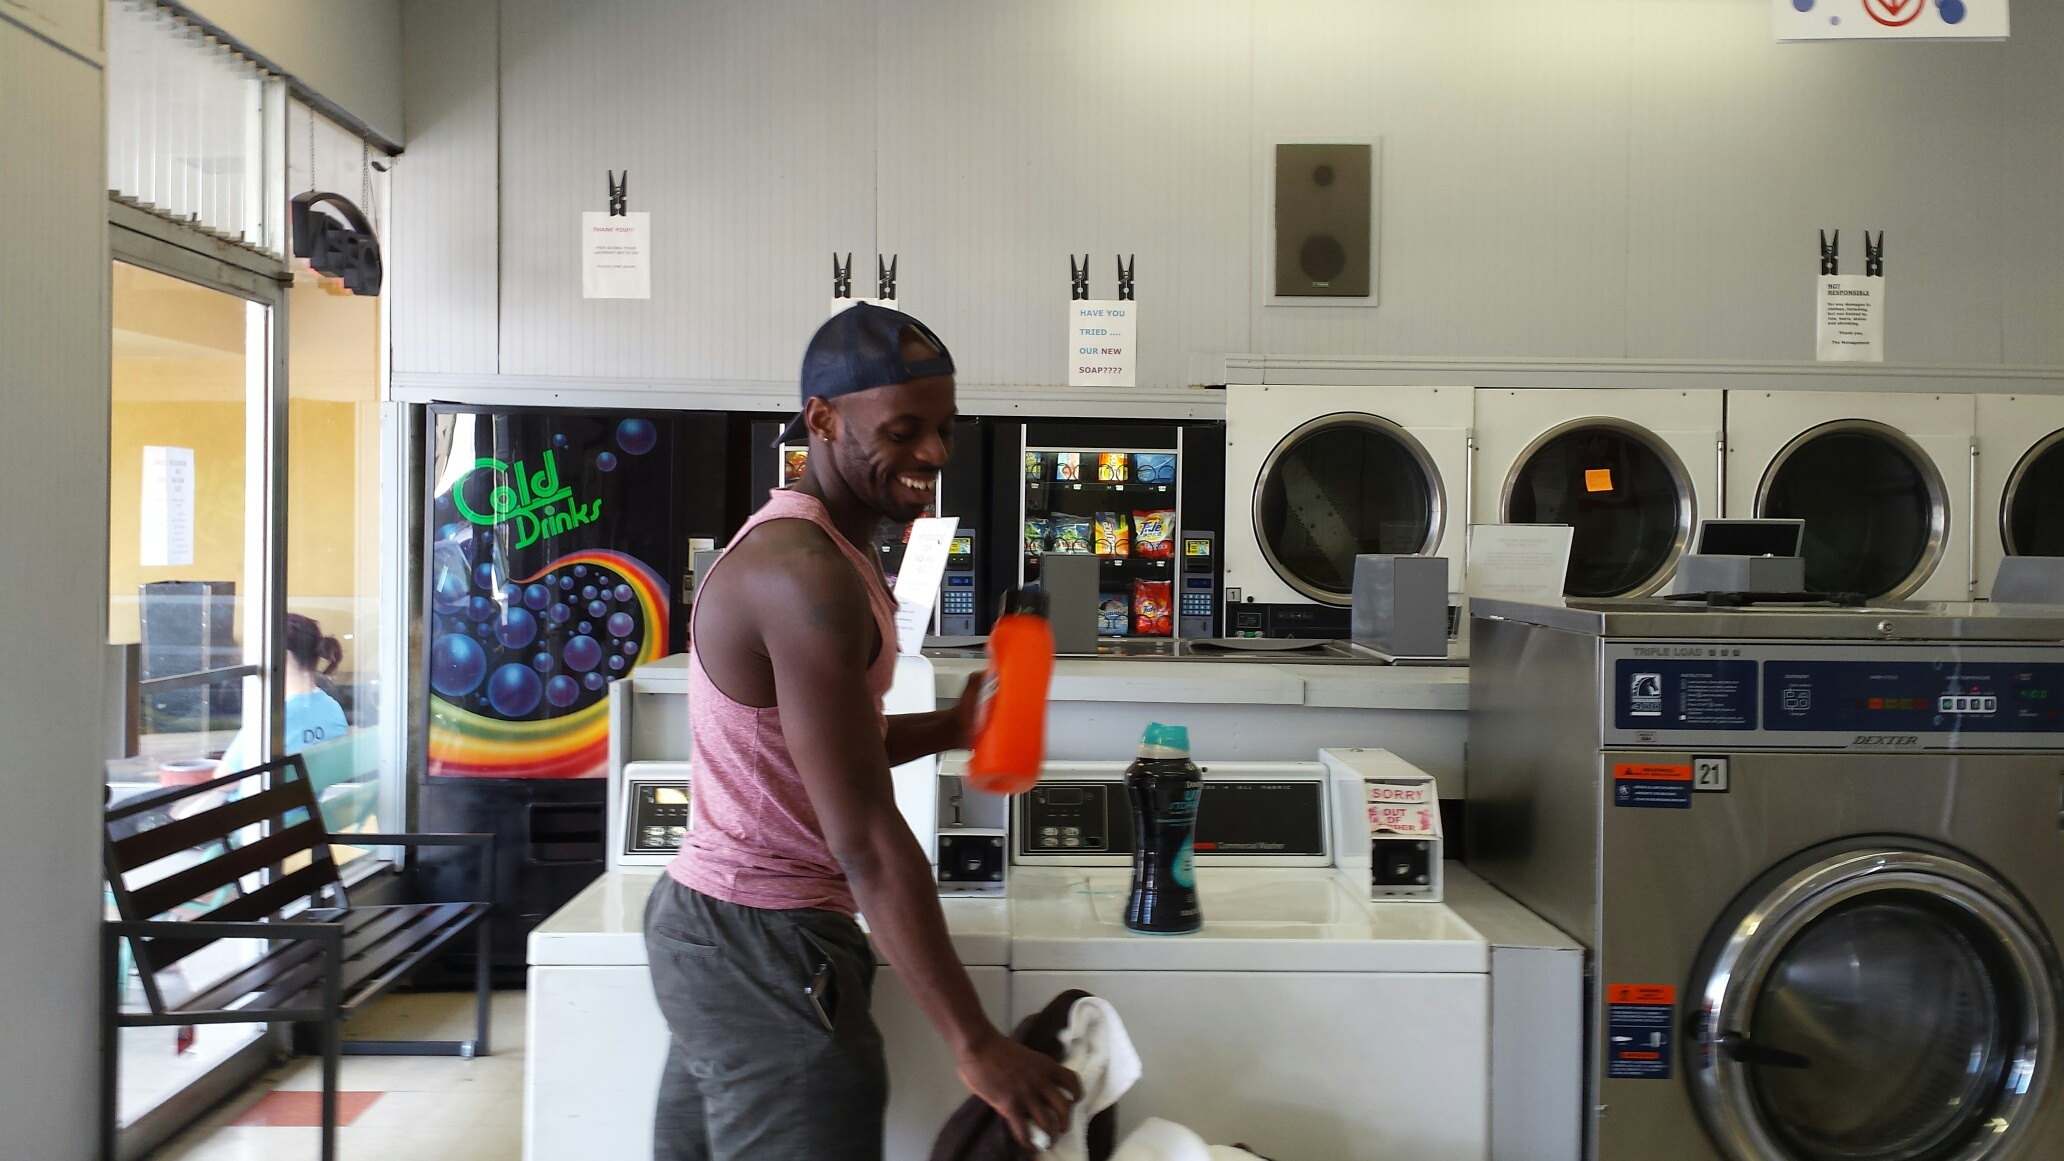 Getting laundry done and having fun!